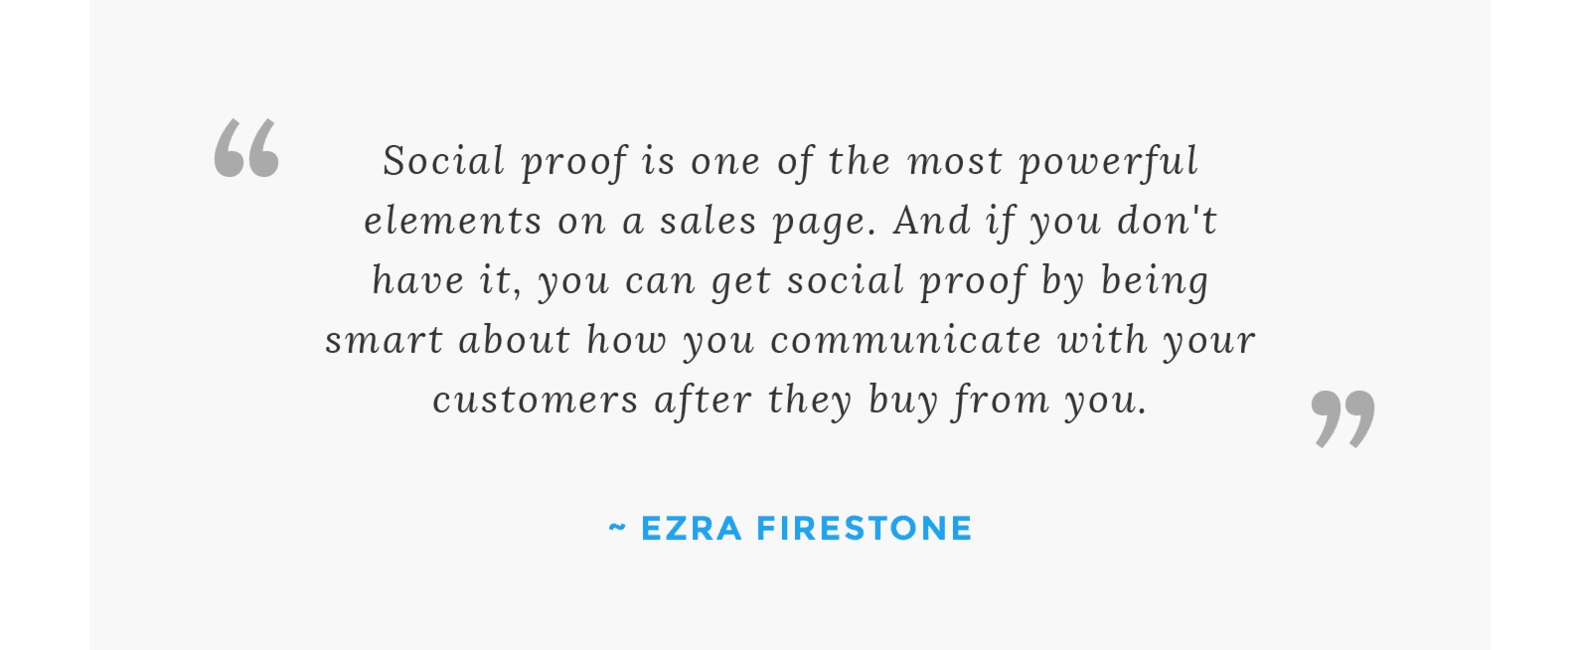 """Social proof is one of the most powerful elements on a sales page. And if you don't have it, you can get social proof by being smart about how you communicate with your customers after they buy from you."" - Ezra Firestone"